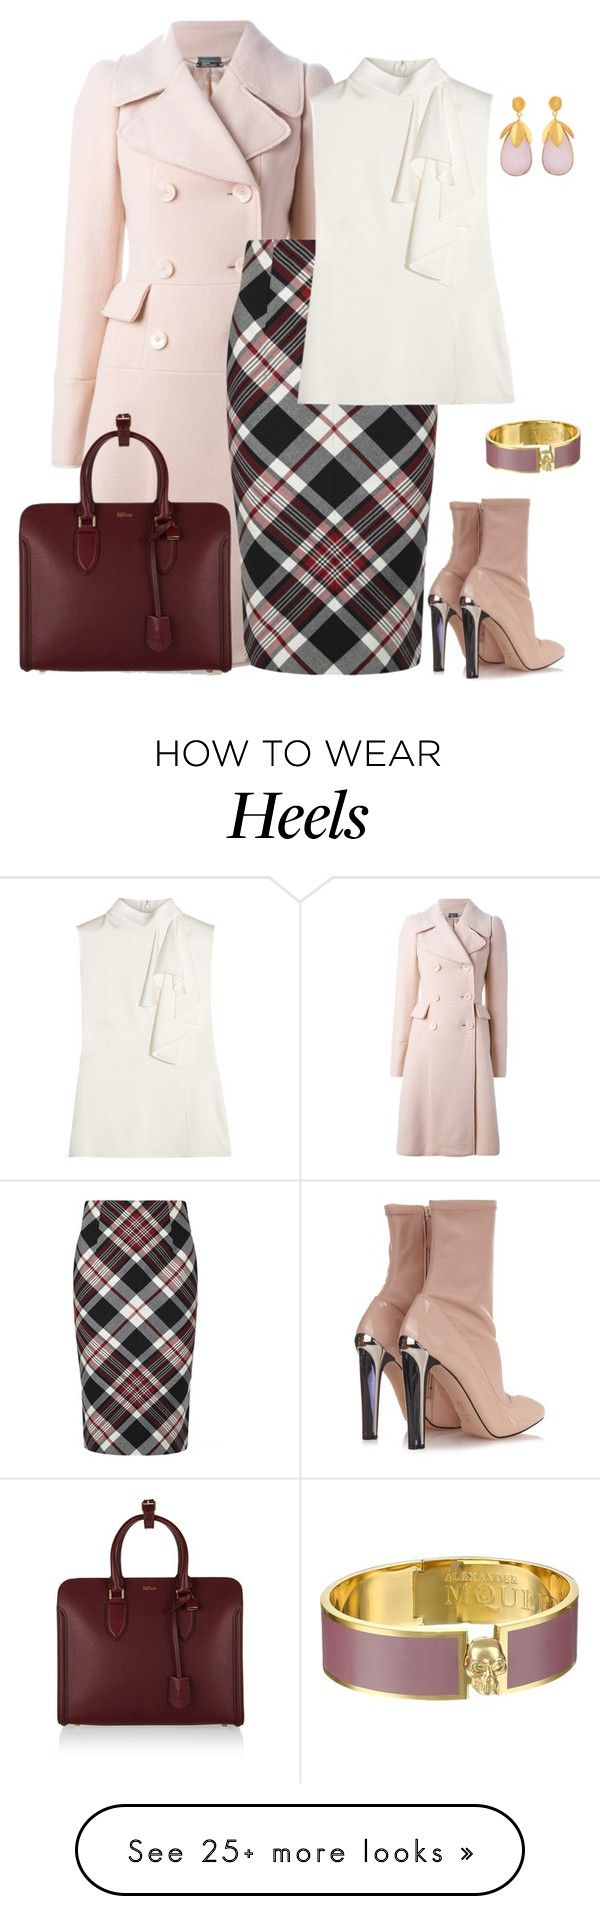 """outfit 2815"" by natalyag on Polyvore featuring Alexander McQueen and Kastur Jewels"